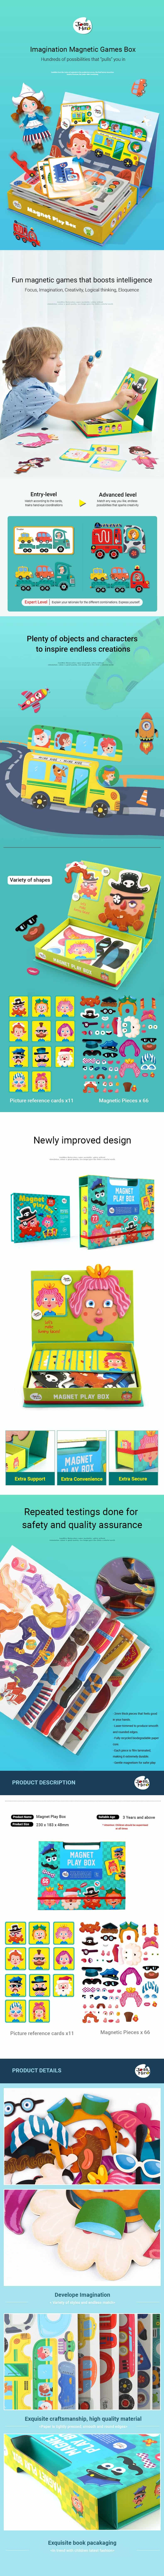 Magnet Play Box - Crazy Faces August 2021